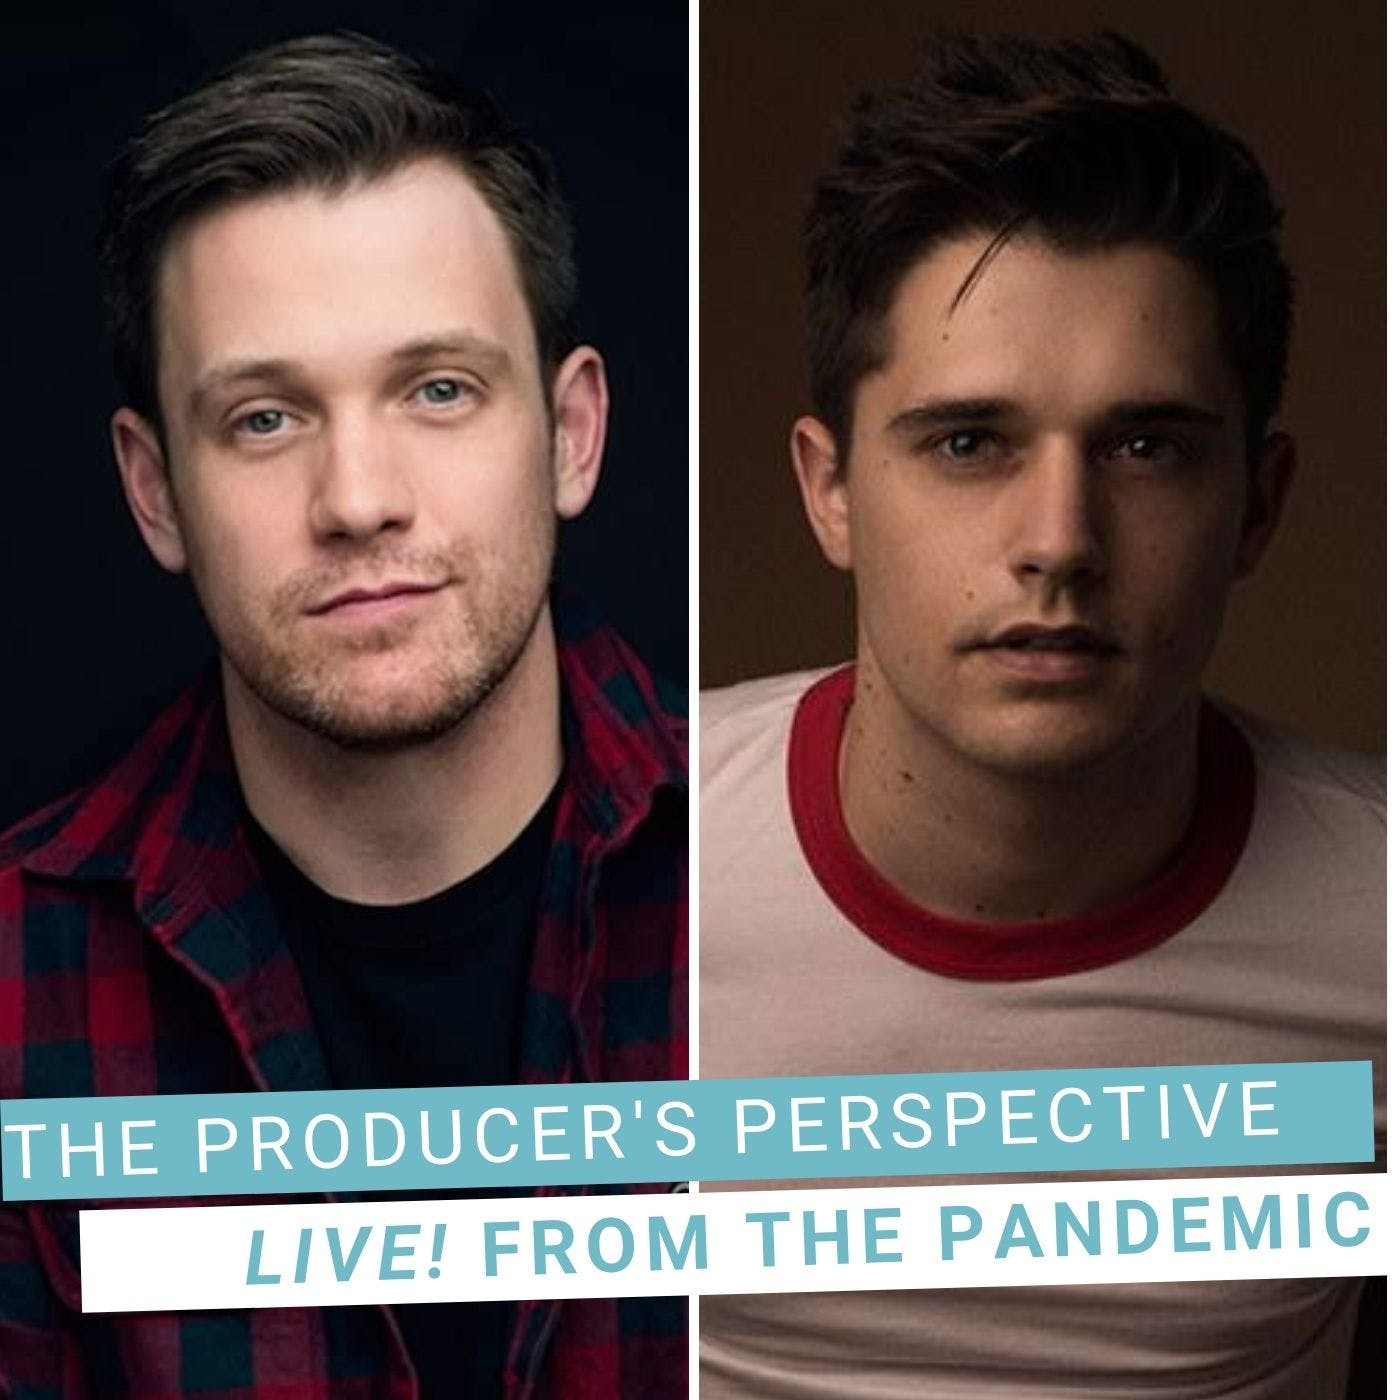 Live From The Pandemic #9: MICHAEL ARDEN & ANDY MIENTUS